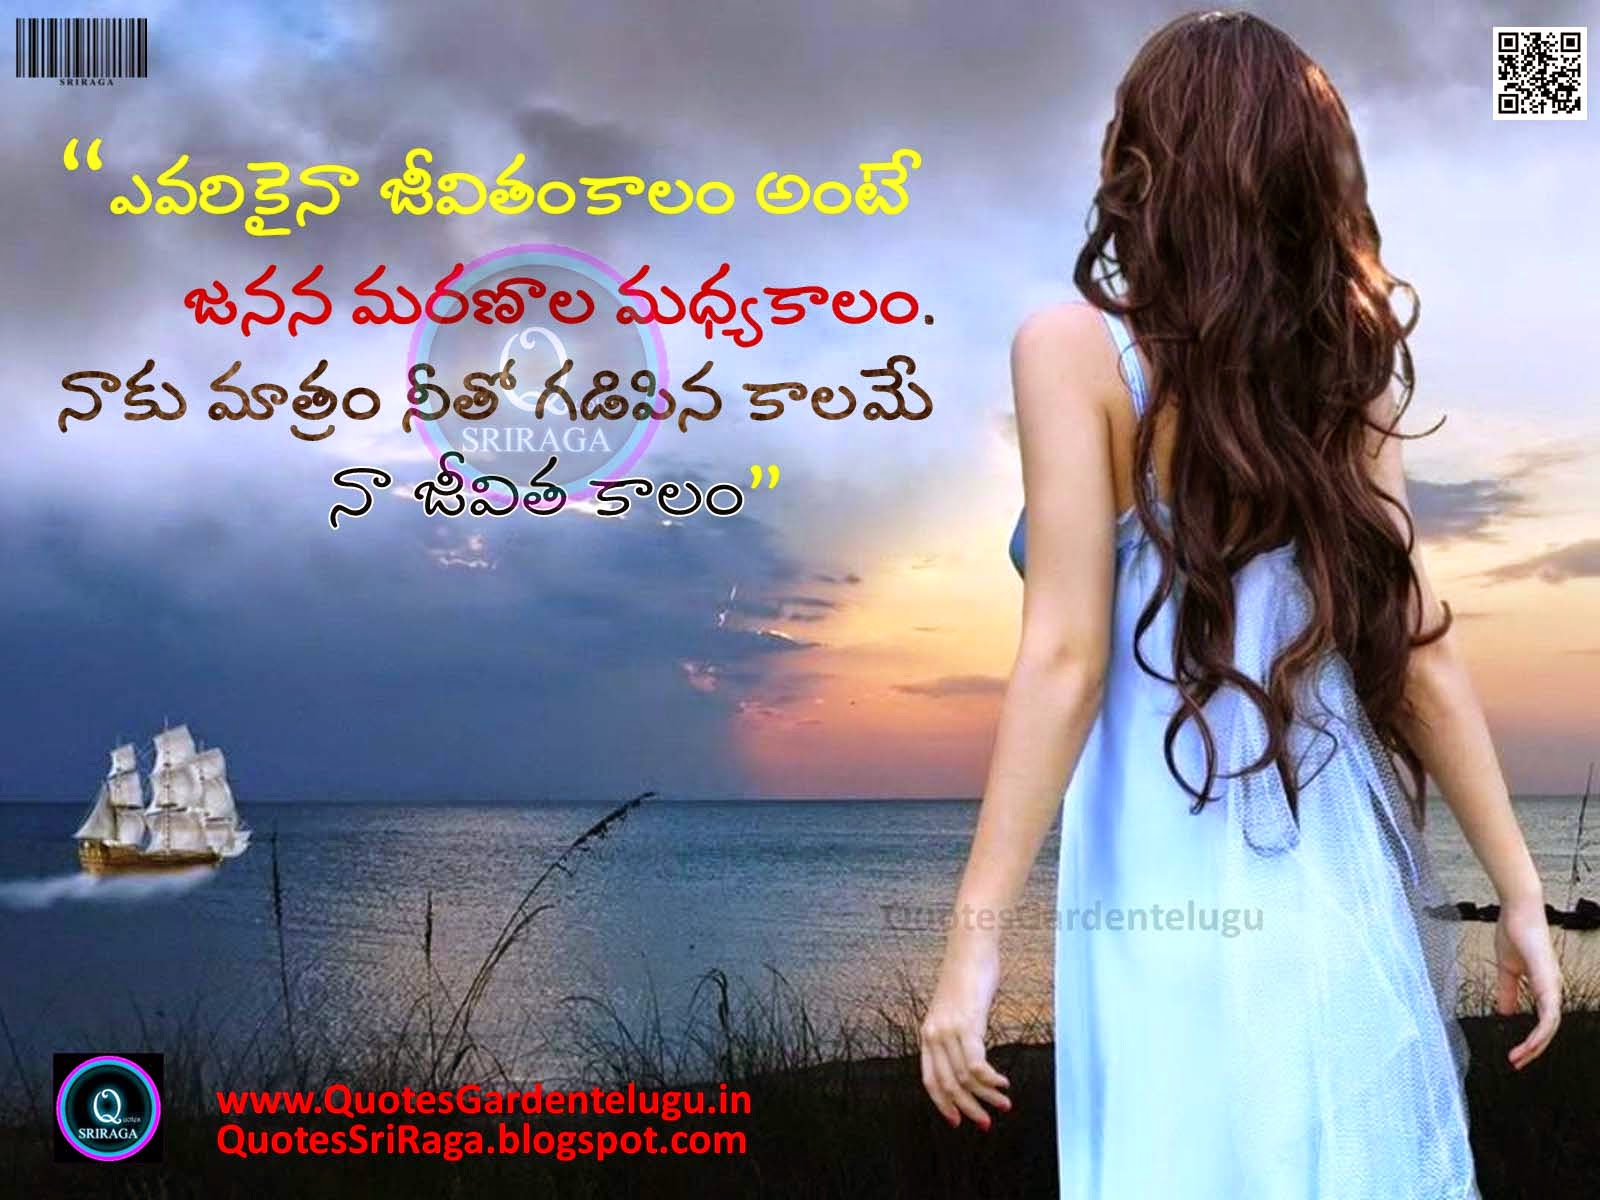 Telugu Quotations On Love Heart touching love quotes in telugu quotes ...